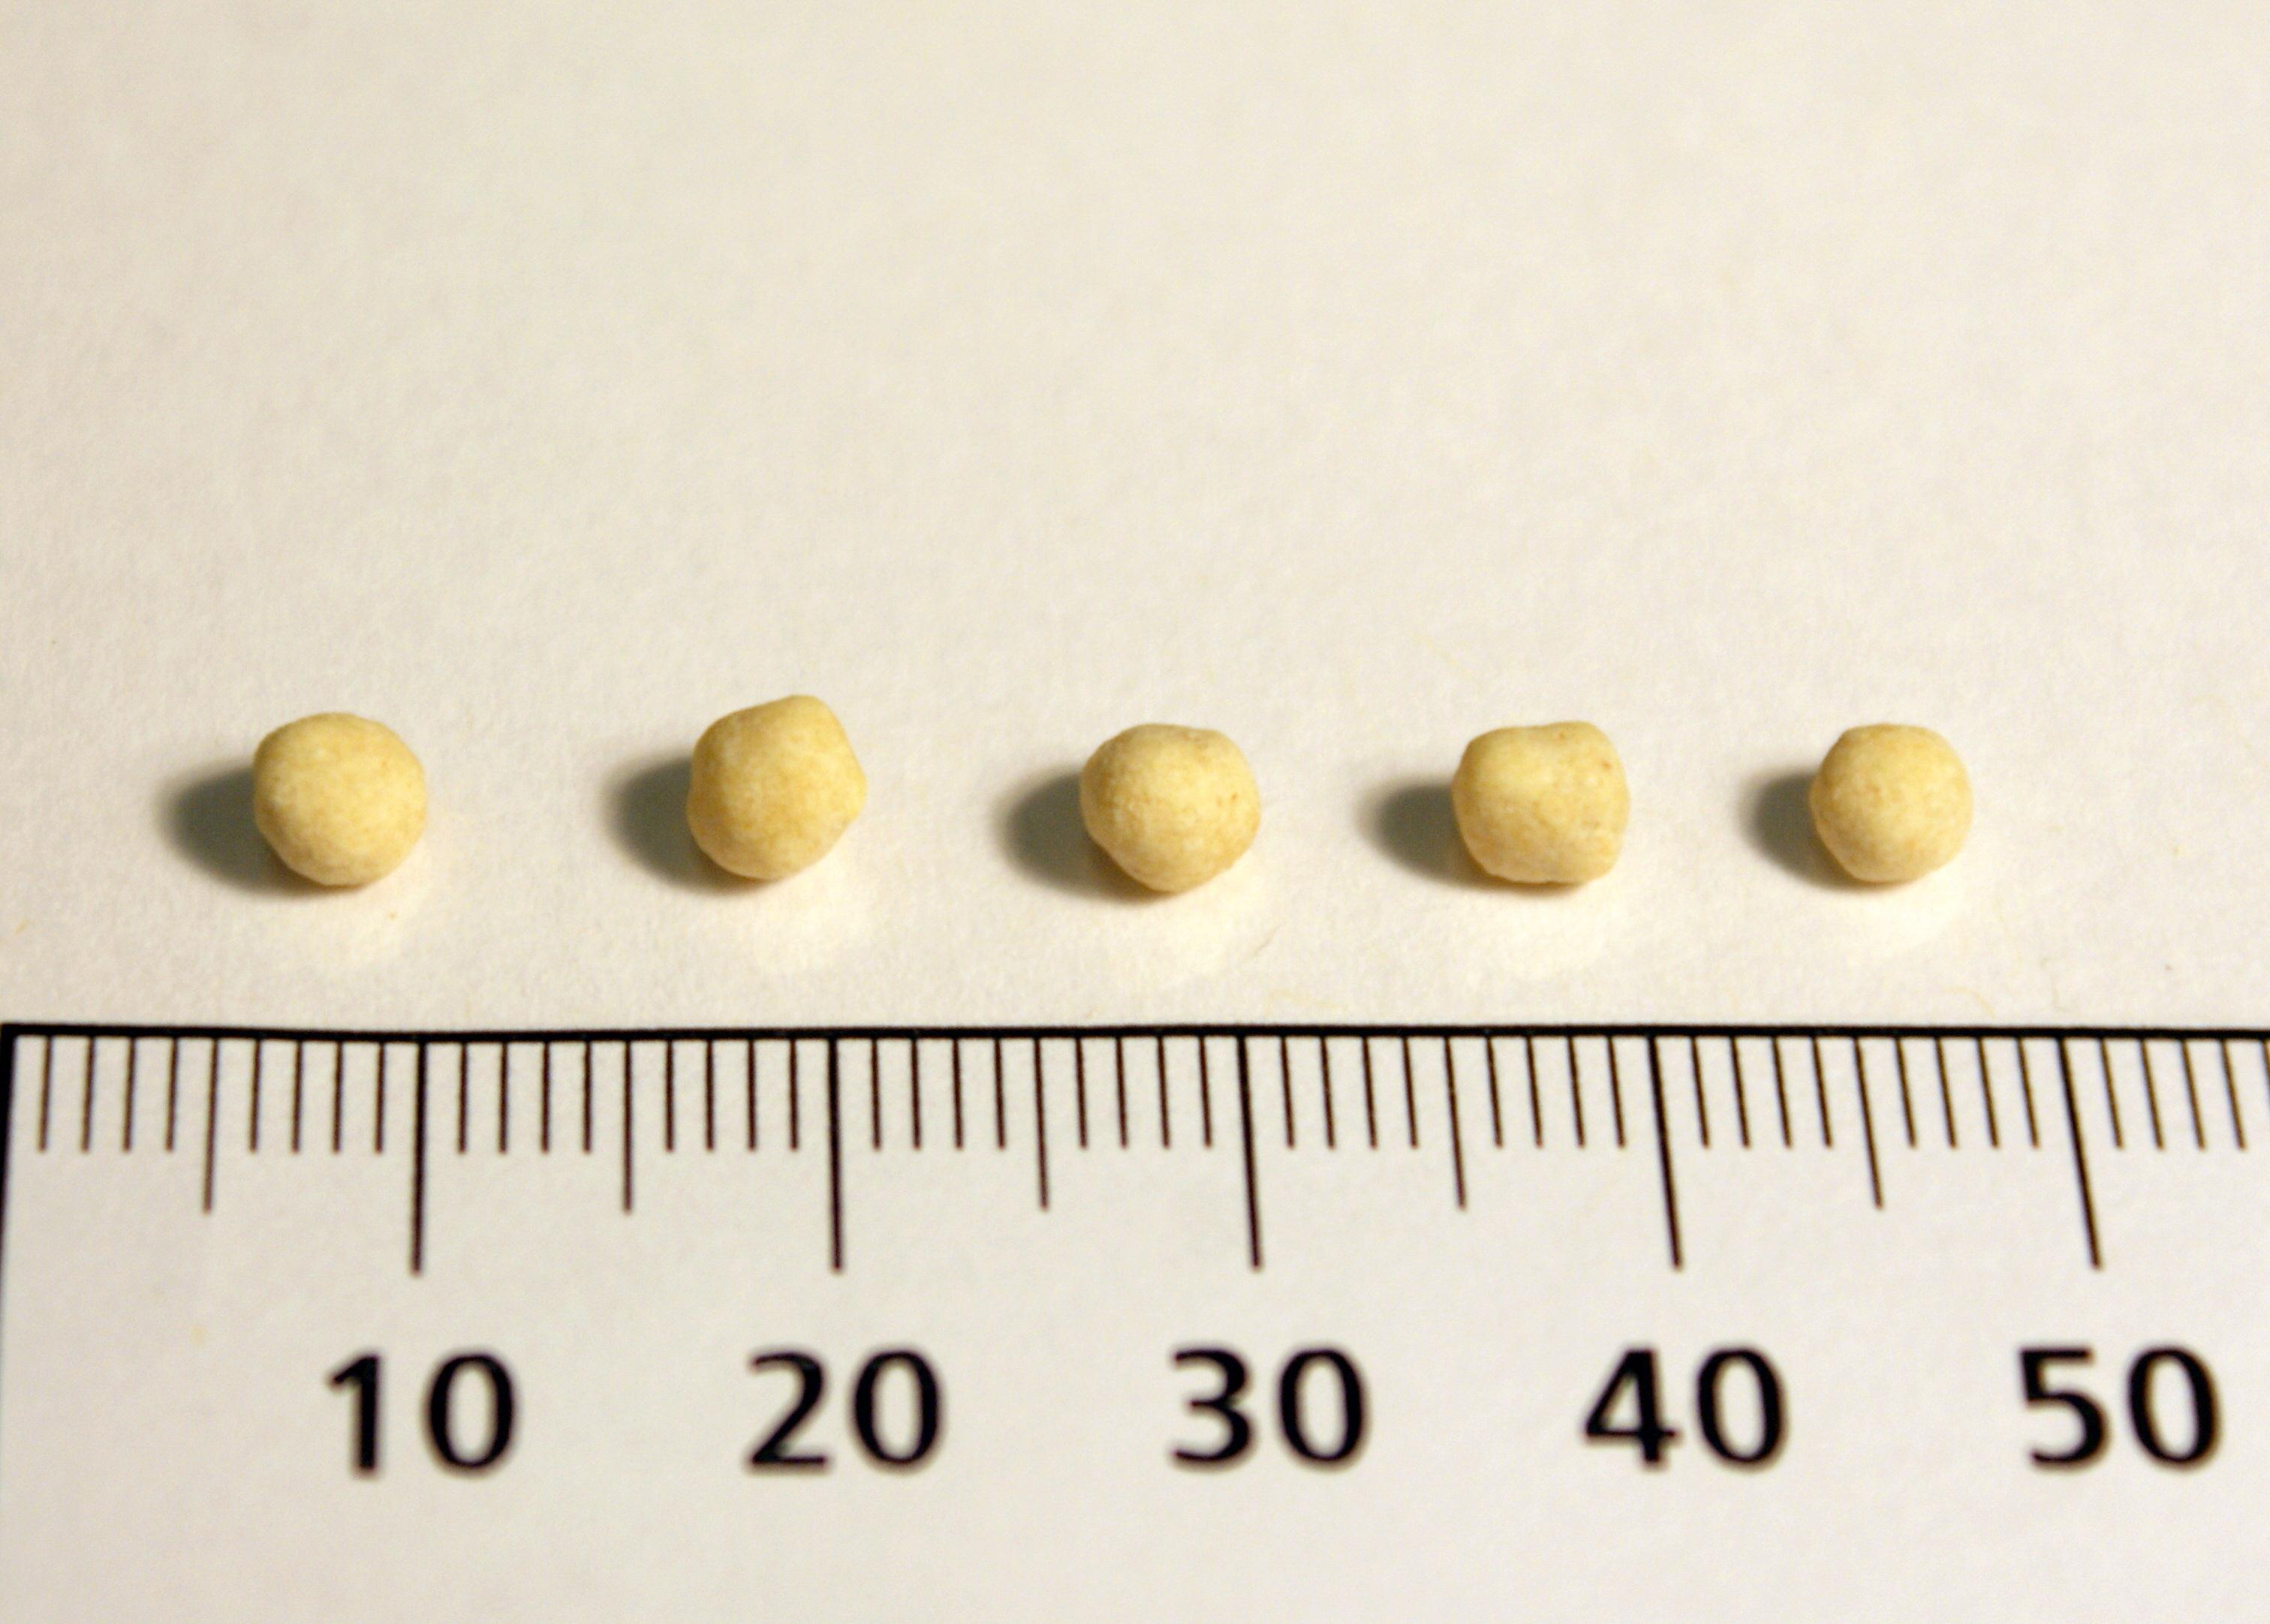 Chickpea seeds from Locus 3, Area A, Ararat.